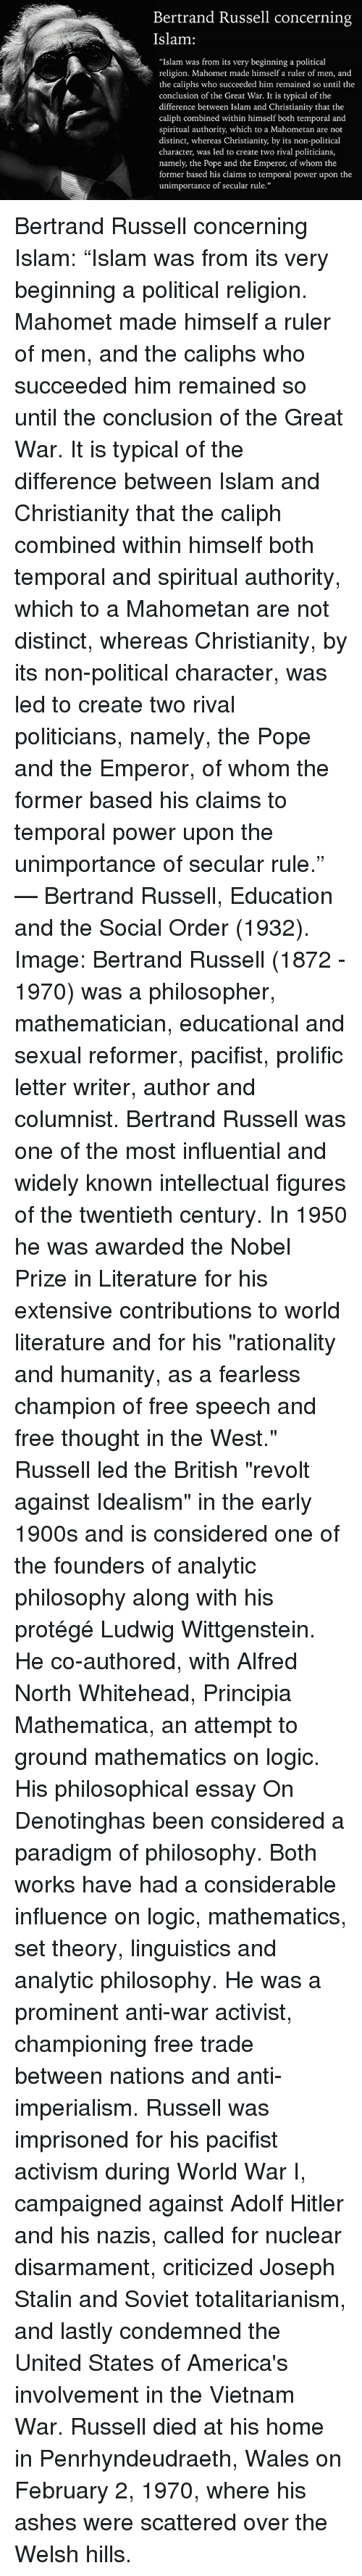 bertrand russell s revolt against neo hegelian idealism Foundations of analytical philosophy bertrand russell and ge to be classified as a member of the realist revolt against hegelian idealism.